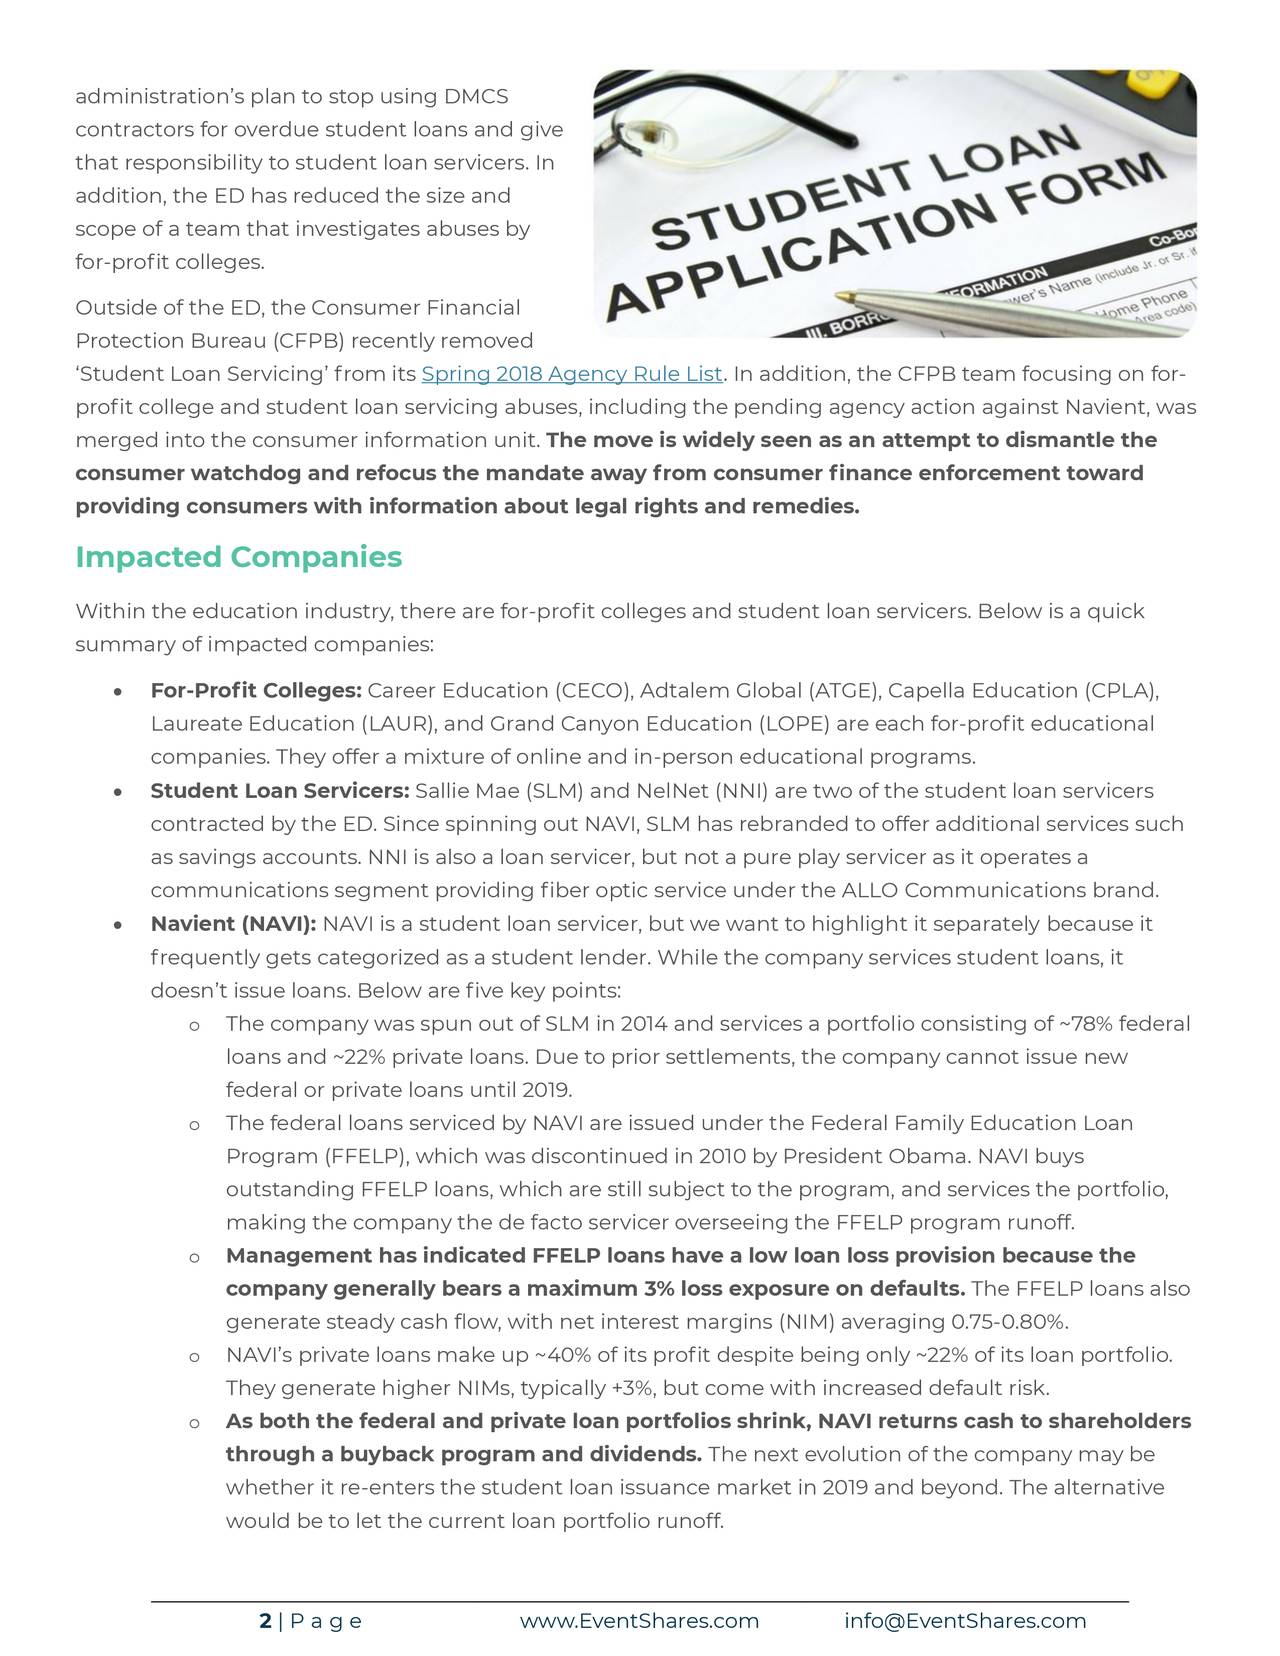 contractors for overdue student loans and give that responsibility to student loan servicers. In addition, the ED has reduced the size and scope of a team that investigates abuses by for-profit colleges. Outside of the ED, the Consumer Financial Protection Bureau (CFPB) recently removed 'Student Loan Servicing' from its Spring 2018 Agency Rule List. In addition, the CFPB team focusing on for- profit college and student loan servicing abuses, including the pending agency action against Navient, was merged into the consumer information unit. The move is widely seen as an attempt to dismantle the consumer watchdog and refocus the mandate away from consumer finance enforcement toward providing consumers with information about legal rights and remedies. Impacted Companies Within the education industry, there are for-profit colleges and student loan servicers. Below is a quick summary of impacted companies: • For-Profit Colleges: Career Education (CECO), Adtalem Global (ATGE), Capella Education (CPLA), Laureate Education (LAUR), and Grand Canyon Education (LOPE) are each for-profit educational companies. They offer a mixture of online and in-person educational programs. • Student Loan Servicers: Sallie Mae (SLM) and NelNet (NNI) are two of the student loan servicers contracted by the ED. Since spinning out NAVI, SLM has rebranded to offer additional services such as savings accounts. NNI is also a loan servicer, but not a pure play servicer as it operates a communications segment providing fiber optic service under the ALLO Communications brand. • Navient (NAVI): NAVI is a student loan servicer, but we want to highlight it separately because it frequently gets categorized as a student lender. While the company services student loans, it doesn't issue loans. Below are five key points: o The company was spun out of SLM in 2014 and services a portfolio consisting of ~78% federal loans and ~22% private loans. Due to prior settlements, the company cannot issue new federal or p